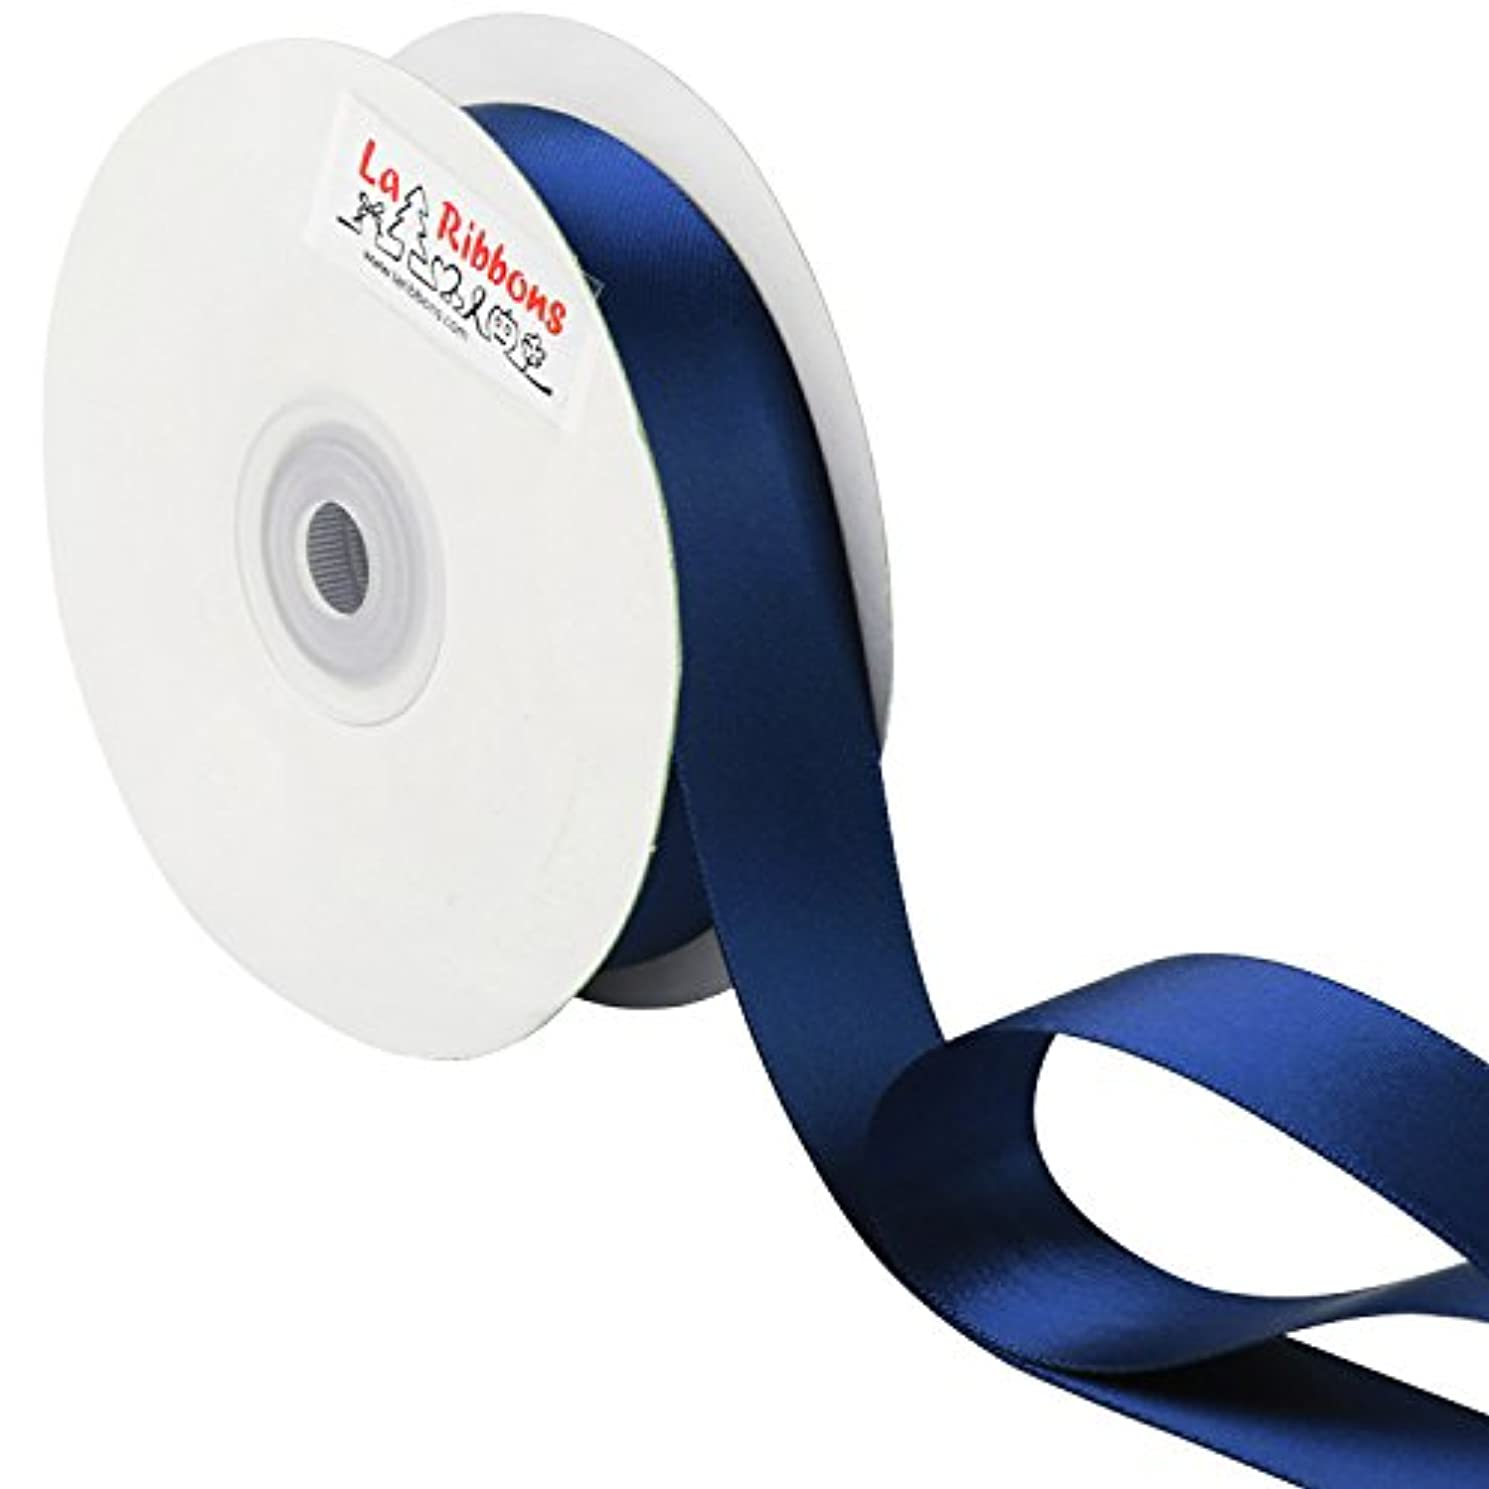 LaRibbons 1 inch Wide Double Face Satin Ribbon - 25 Yard (370-Navy)